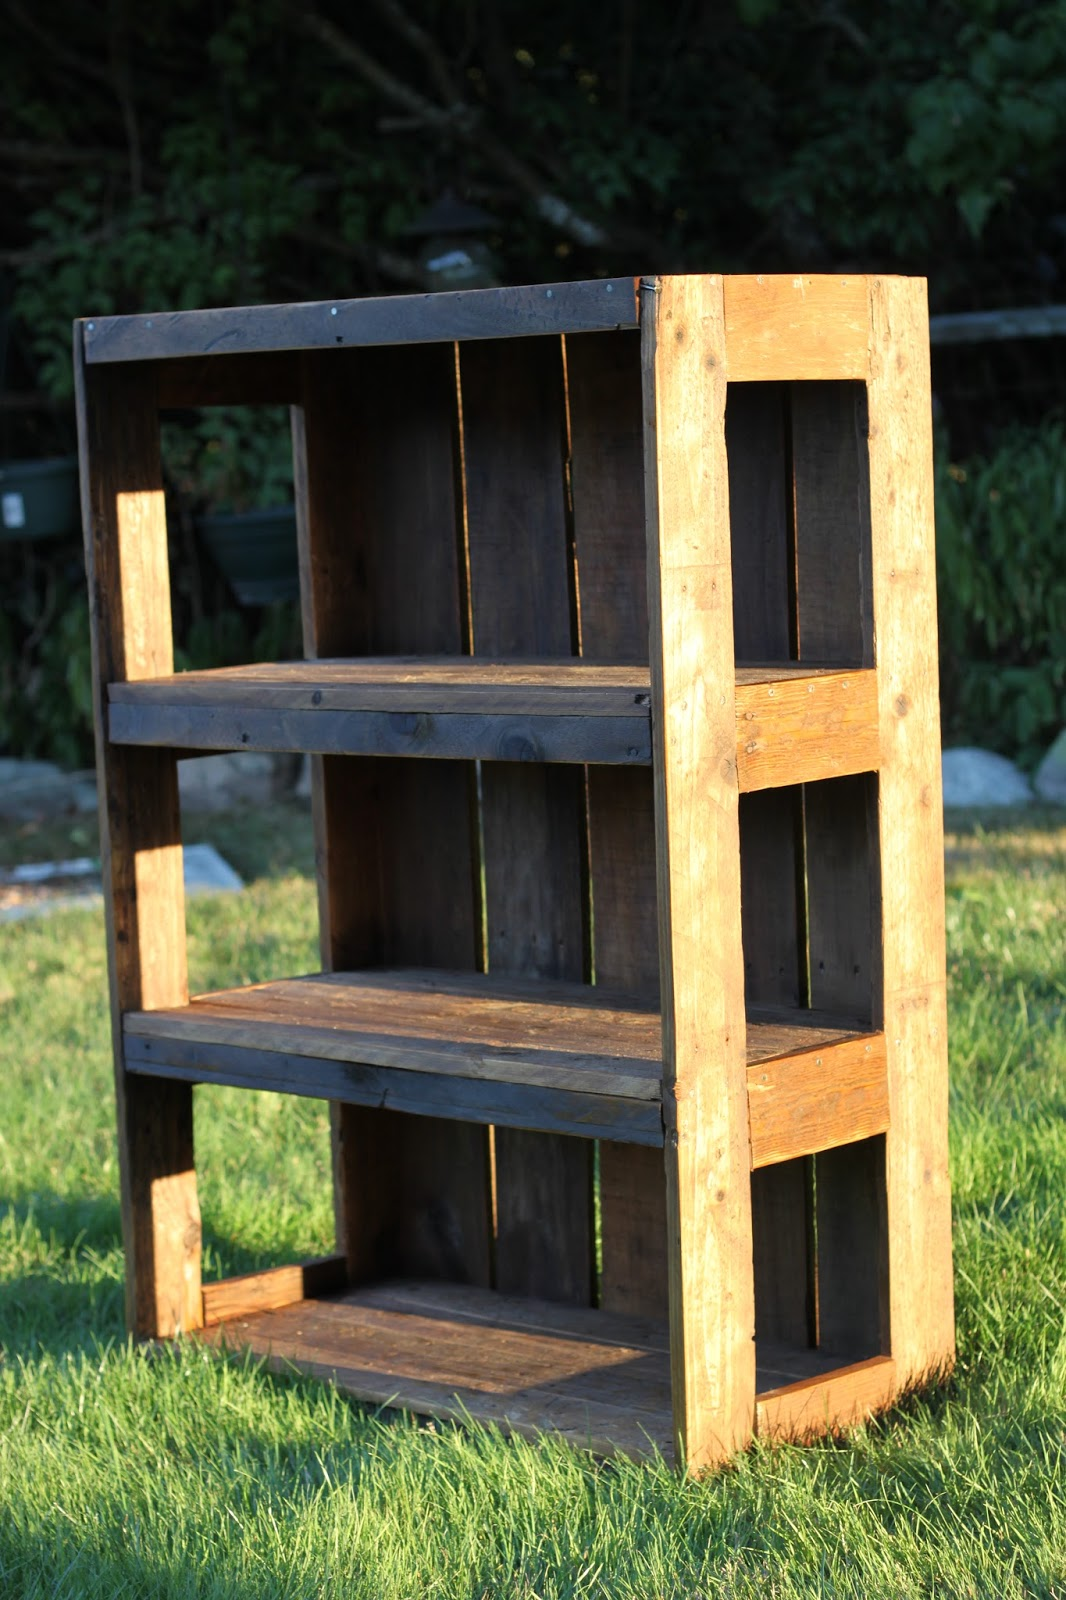 made with love that can be felt diy pallet bookshelf diy pal